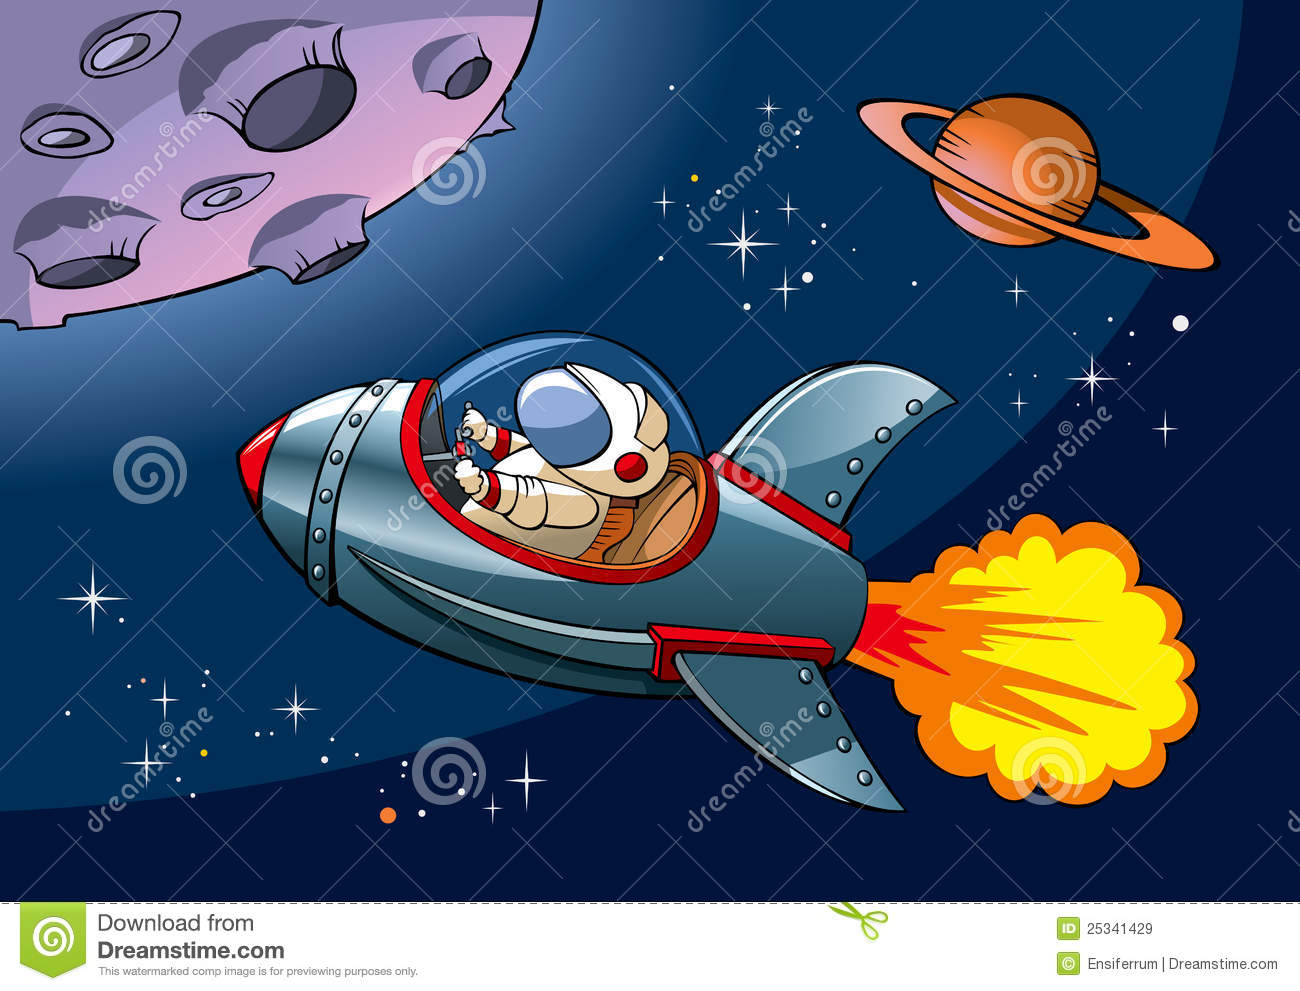 Spaceship with astronaut approaching a planet, vector illustration.